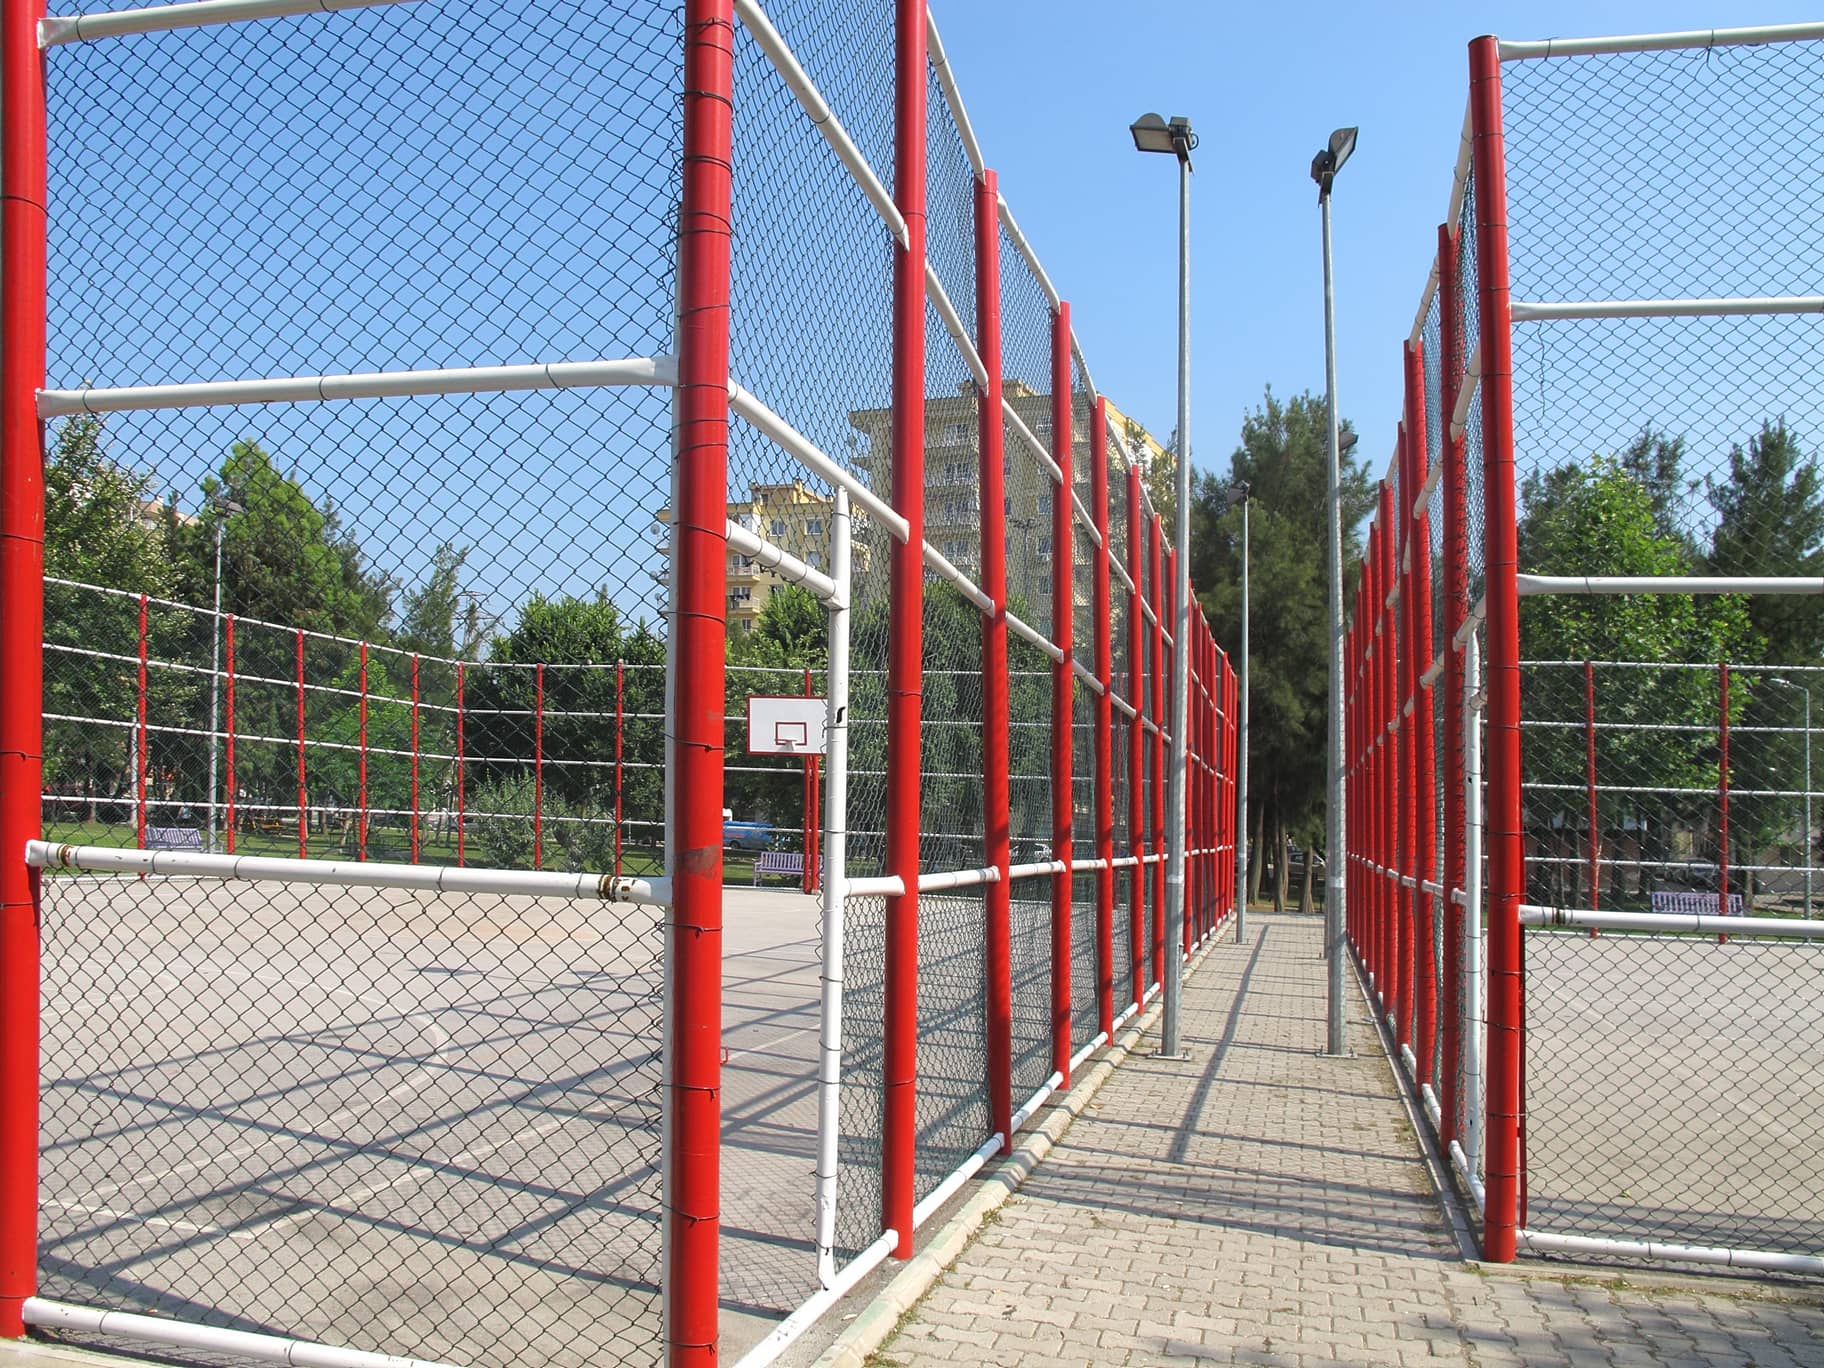 An image of metal fencing surrounding a basket ball court.